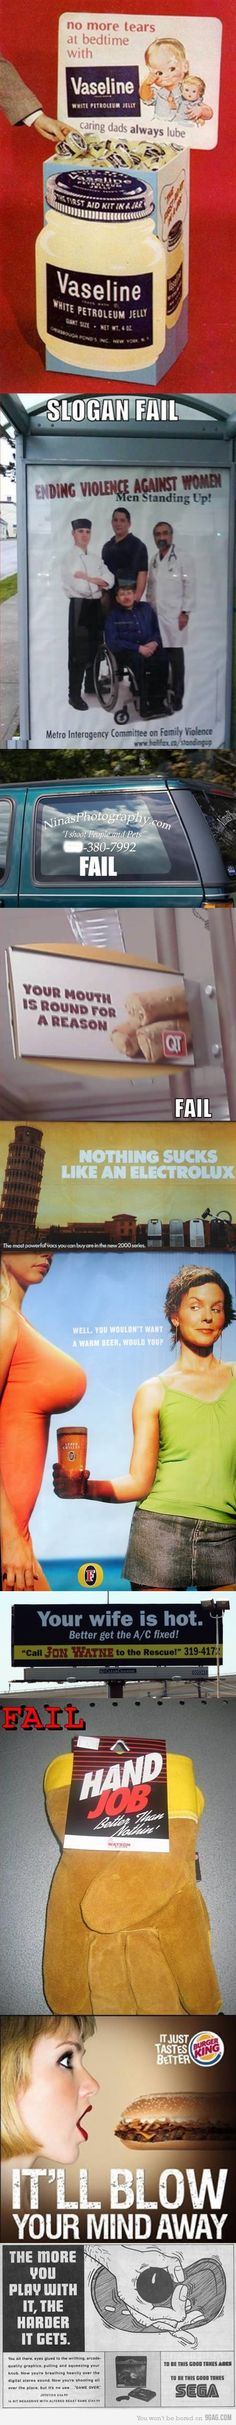 Hilarious Inappropriate Ads